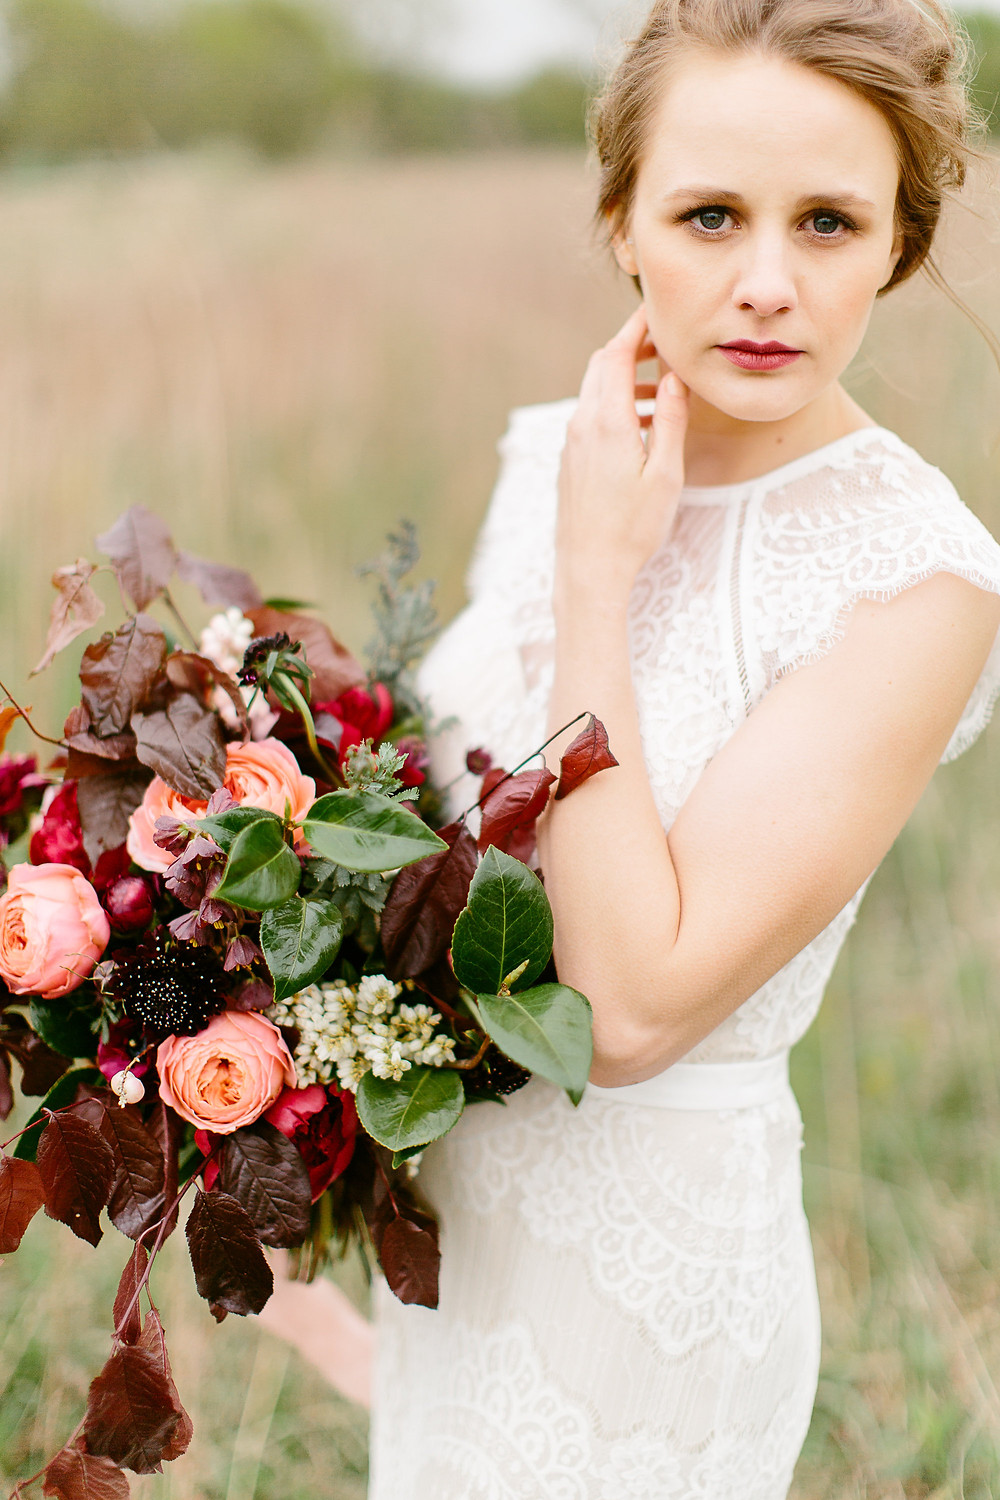 bride posing with lush garden bridal bouquet by studio bloom iowa with peach garden roses and burgundy peonies